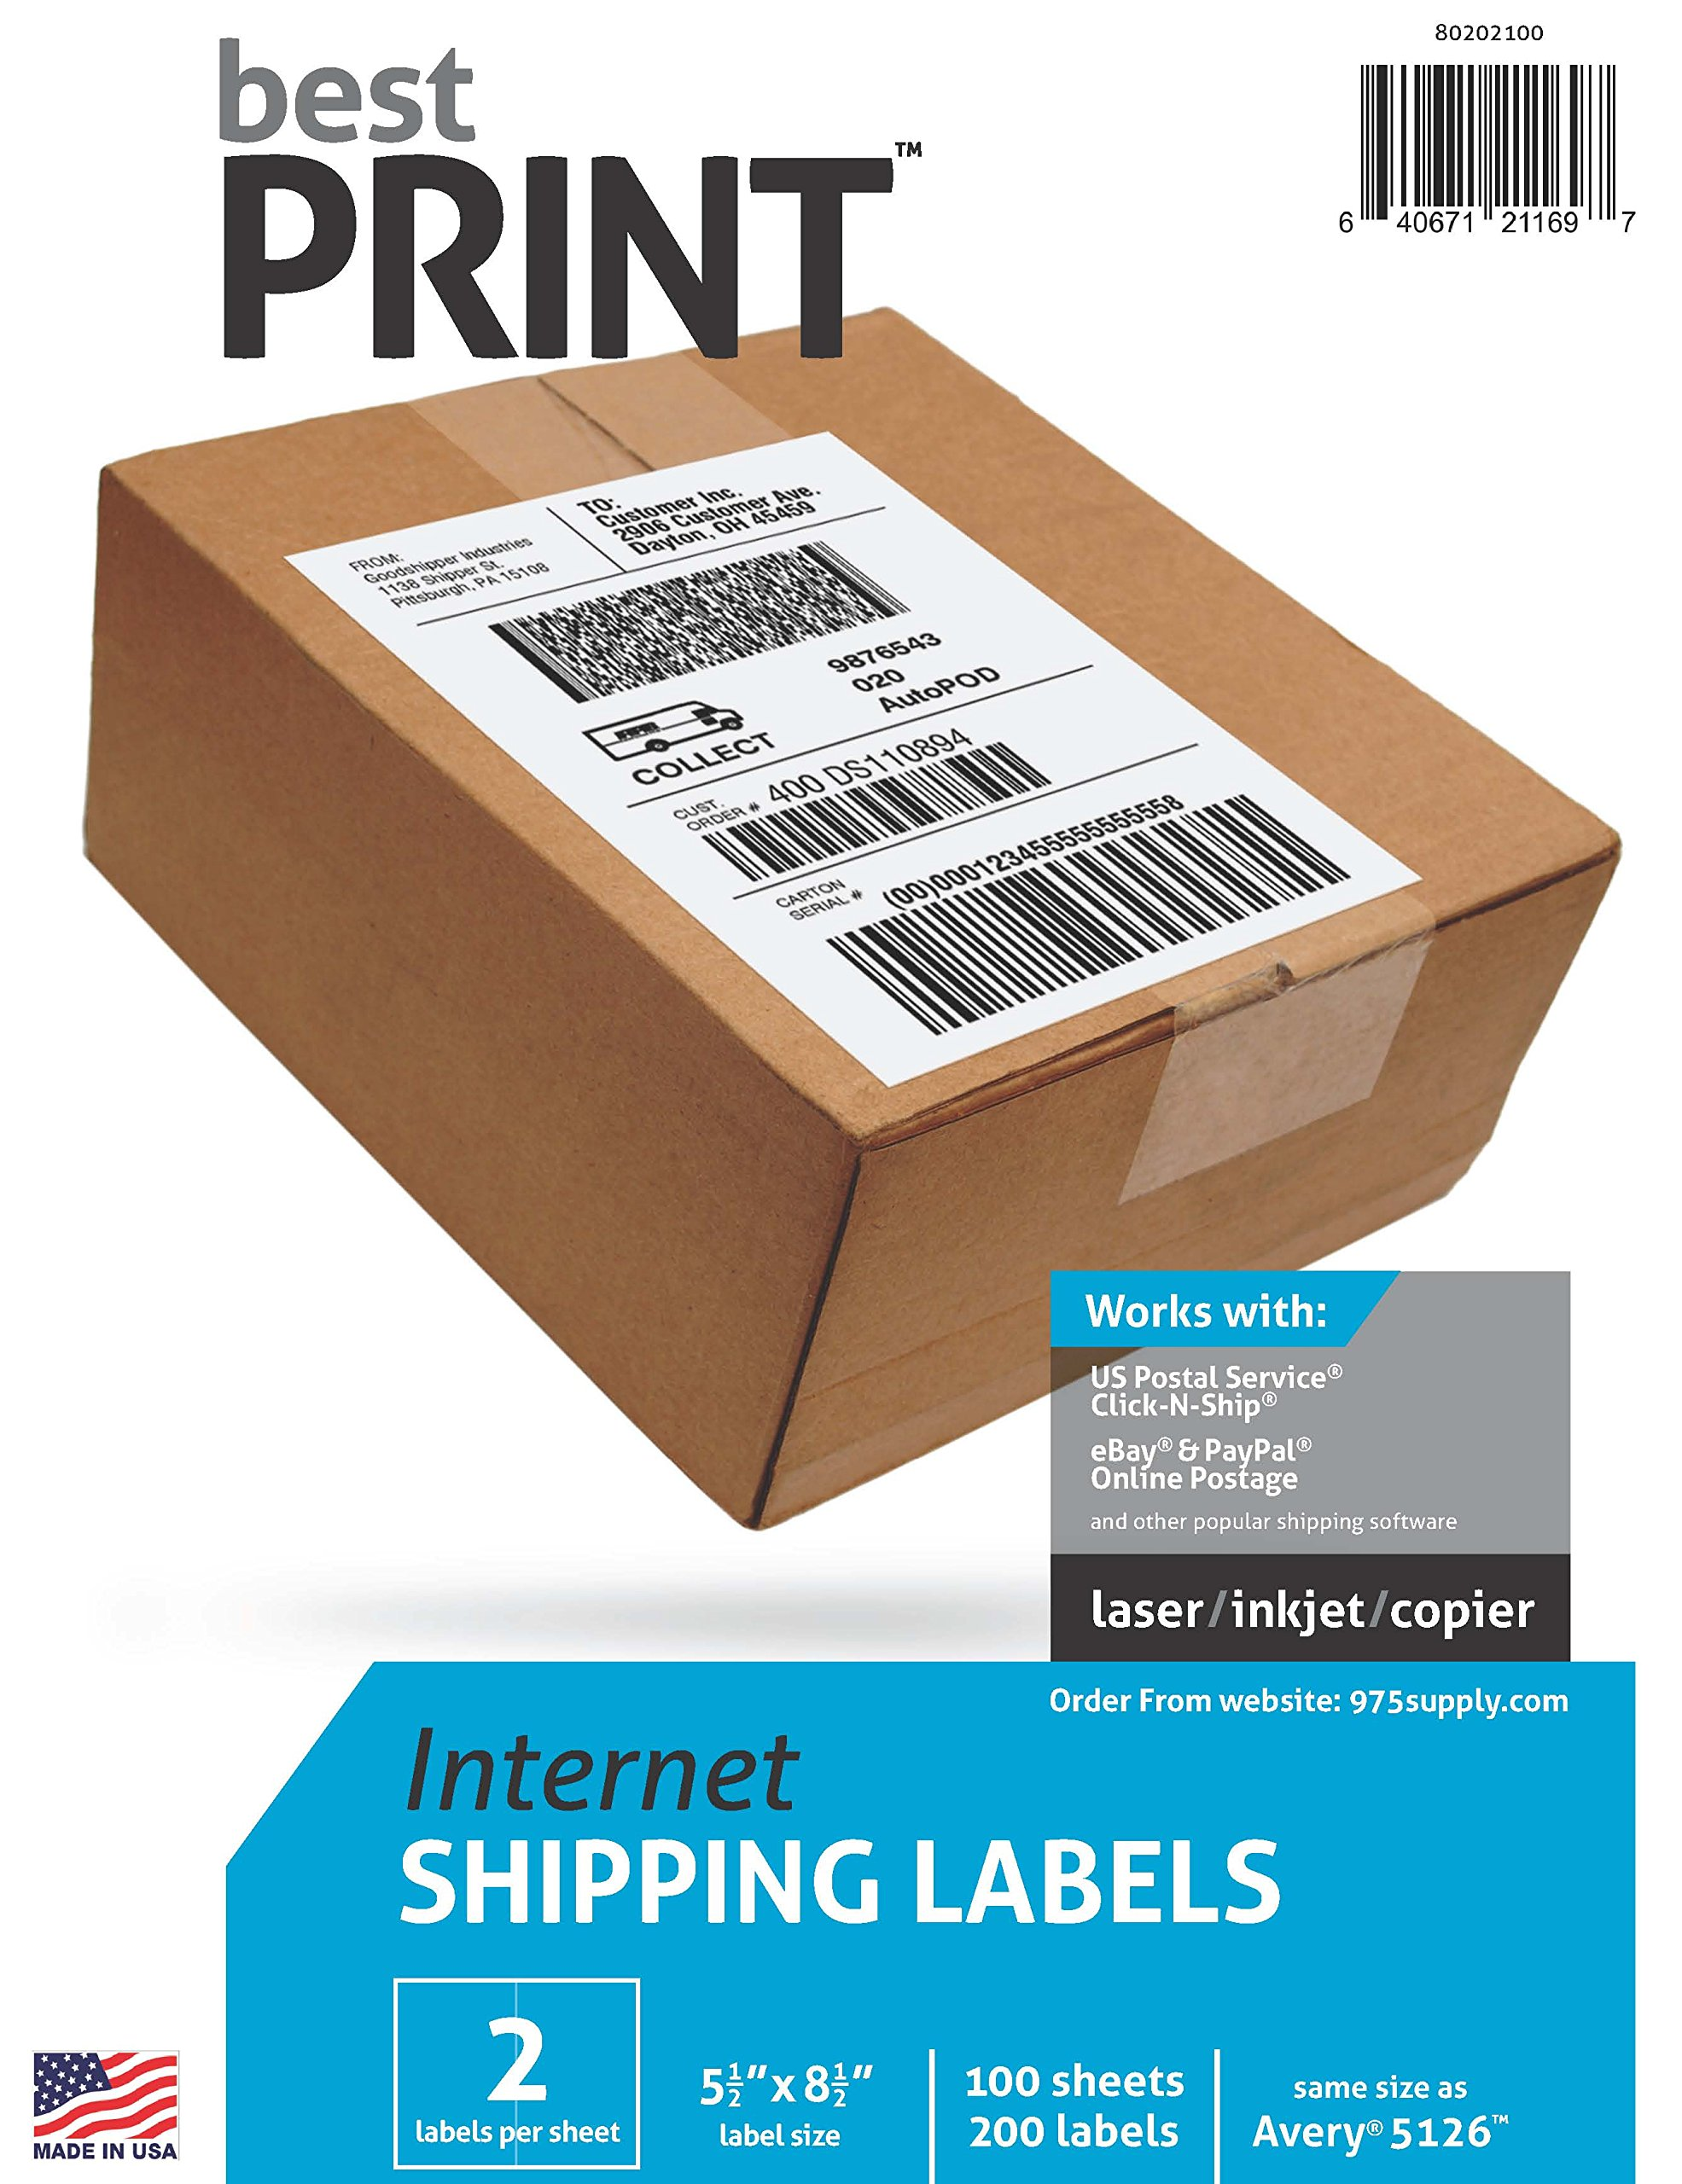 Address Labels - Best Print Brand - 1000 Half Sheet - Best Print Shipping Labels - 5-1/2'' x 8-1/2''